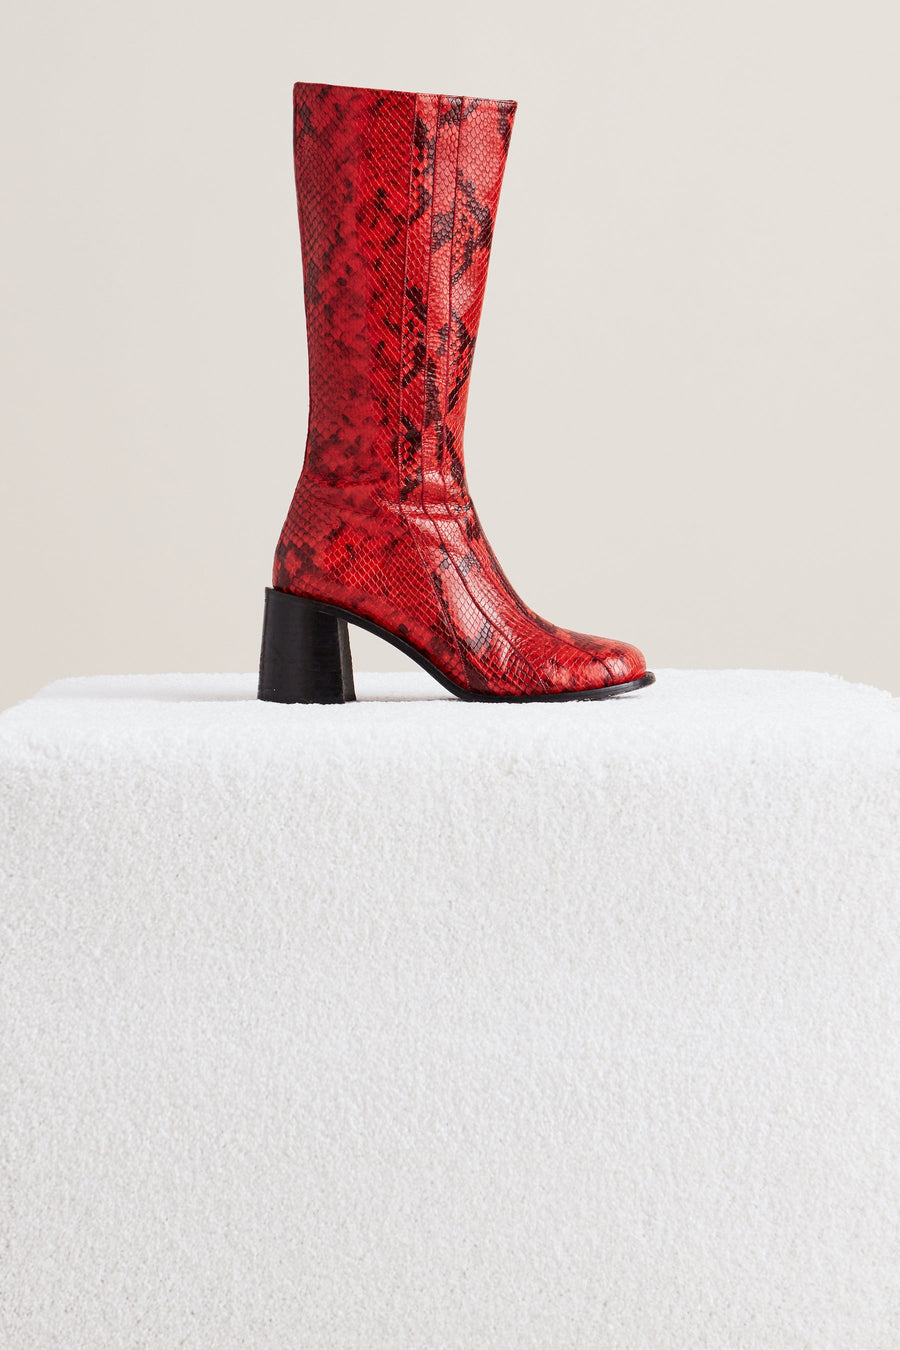 Mojo Boot in Tango Red